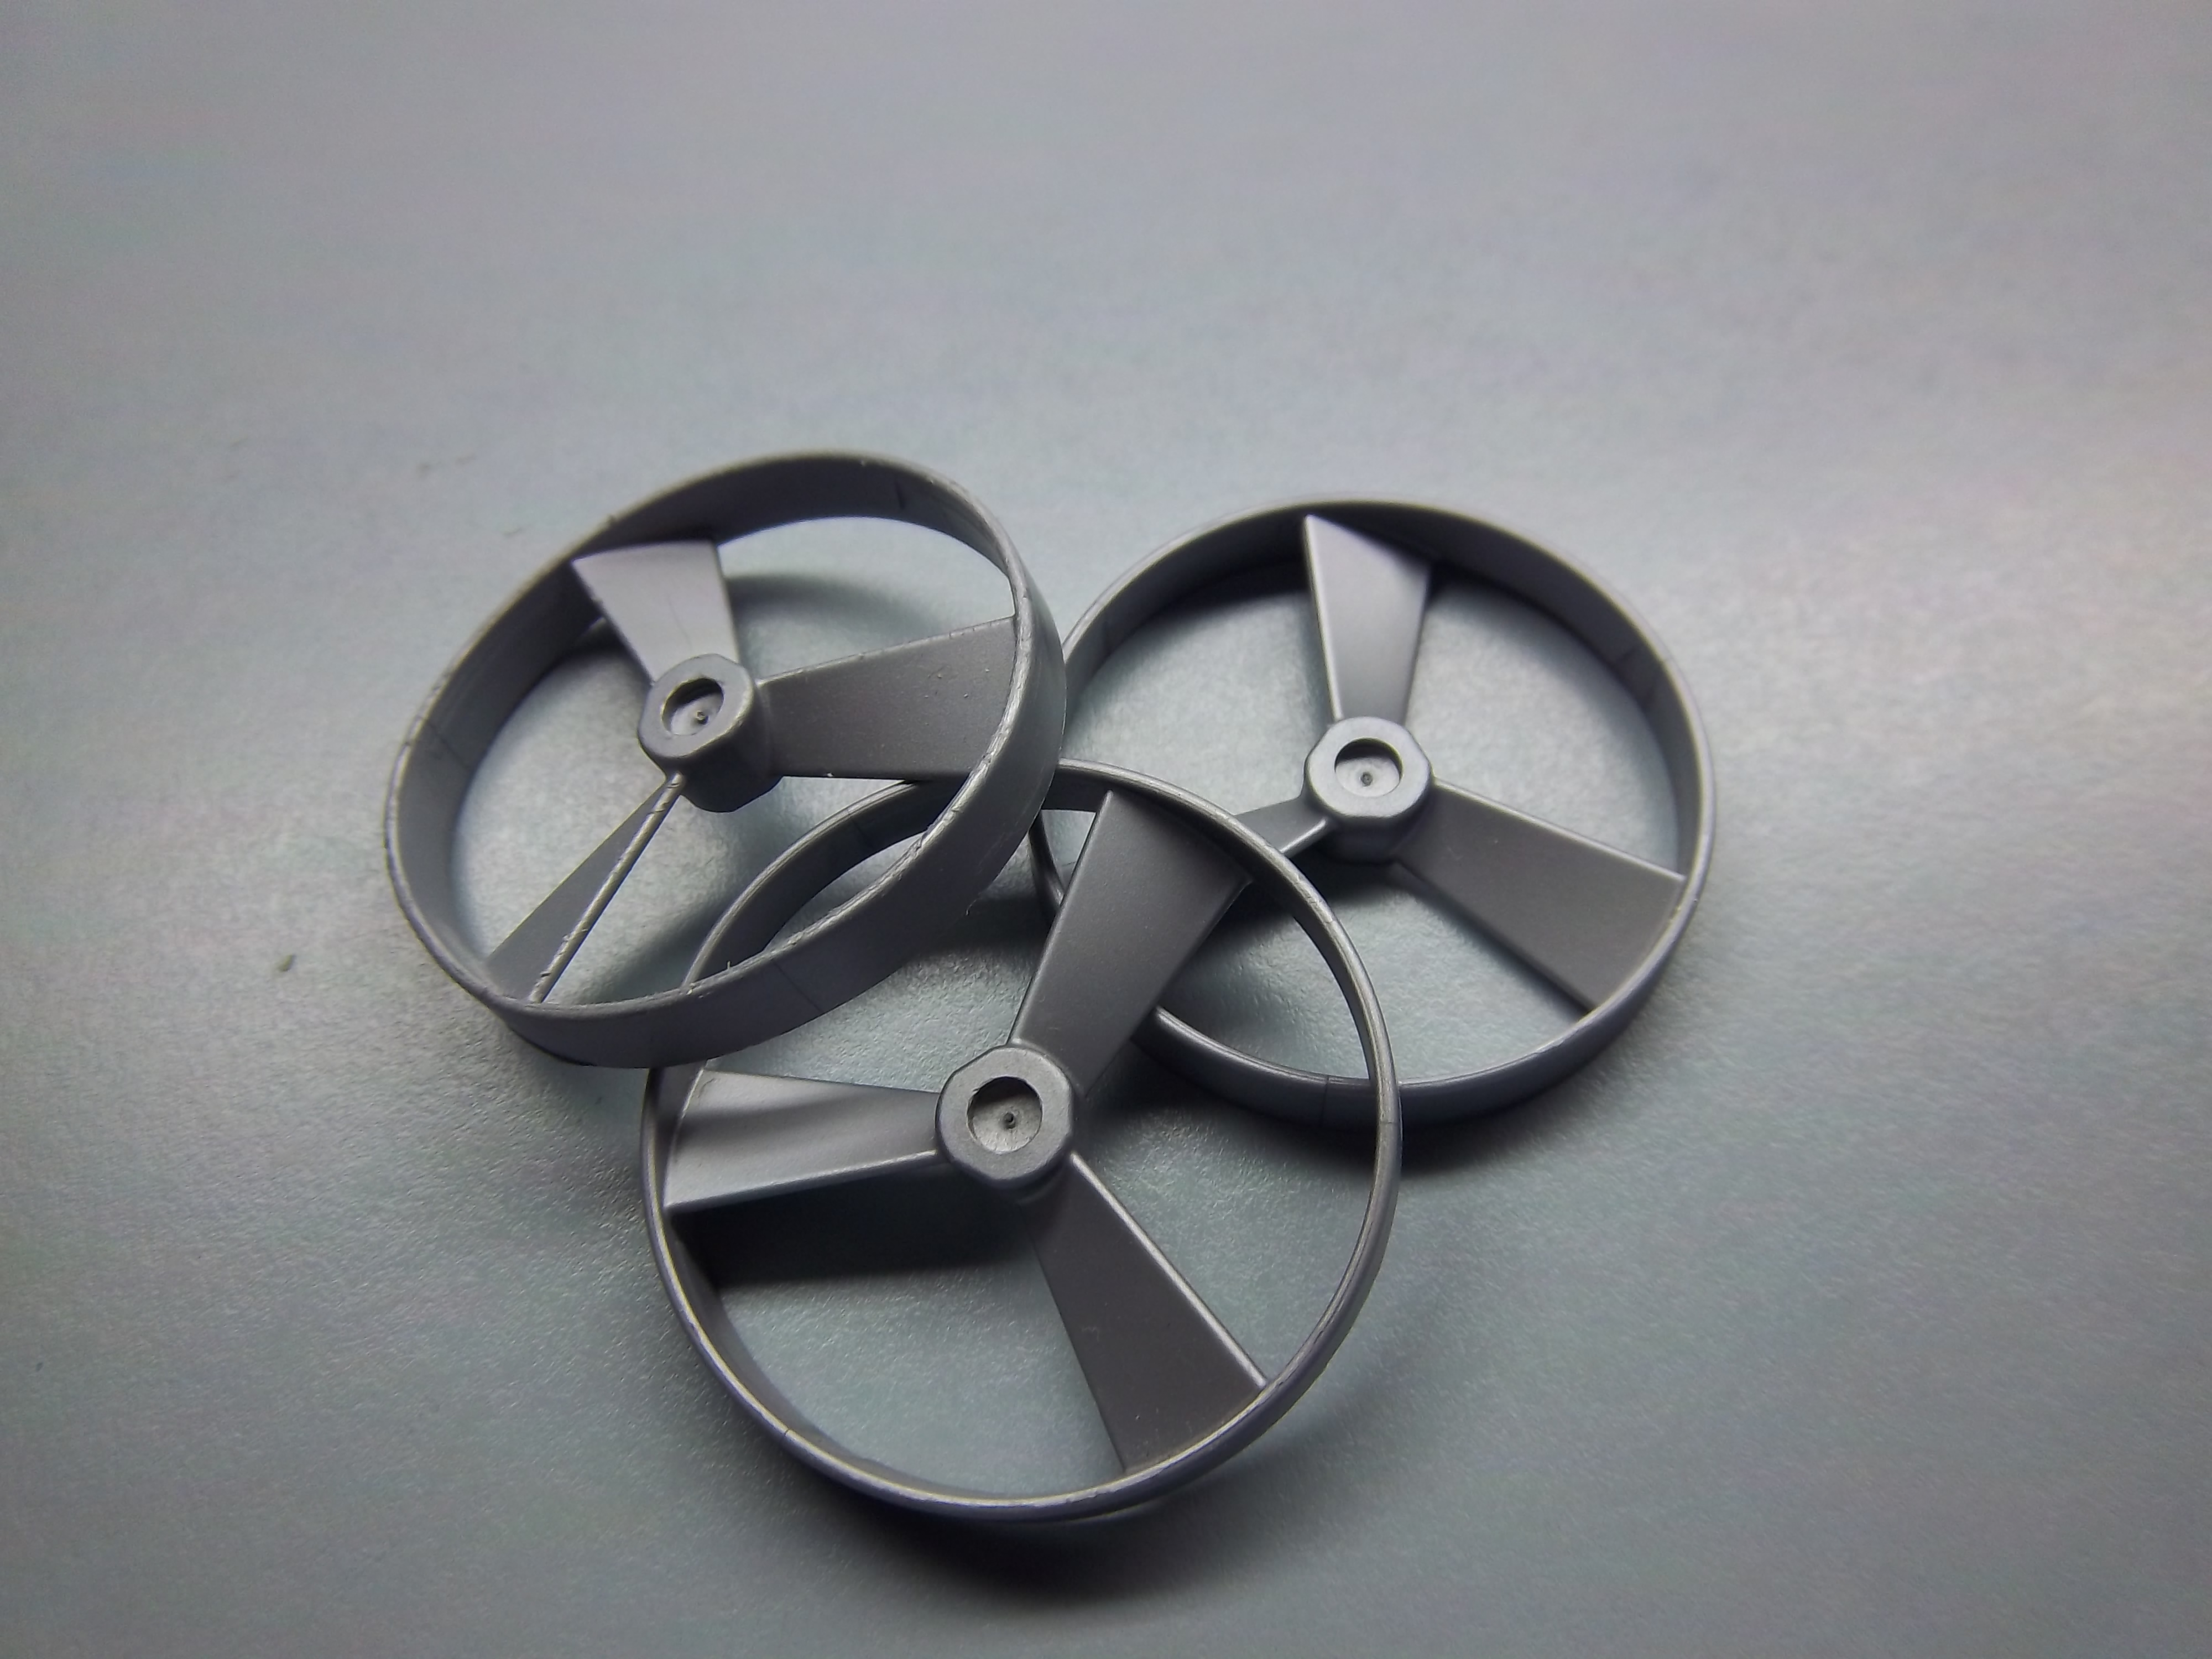 Picture of Lego Flying Disk Toy